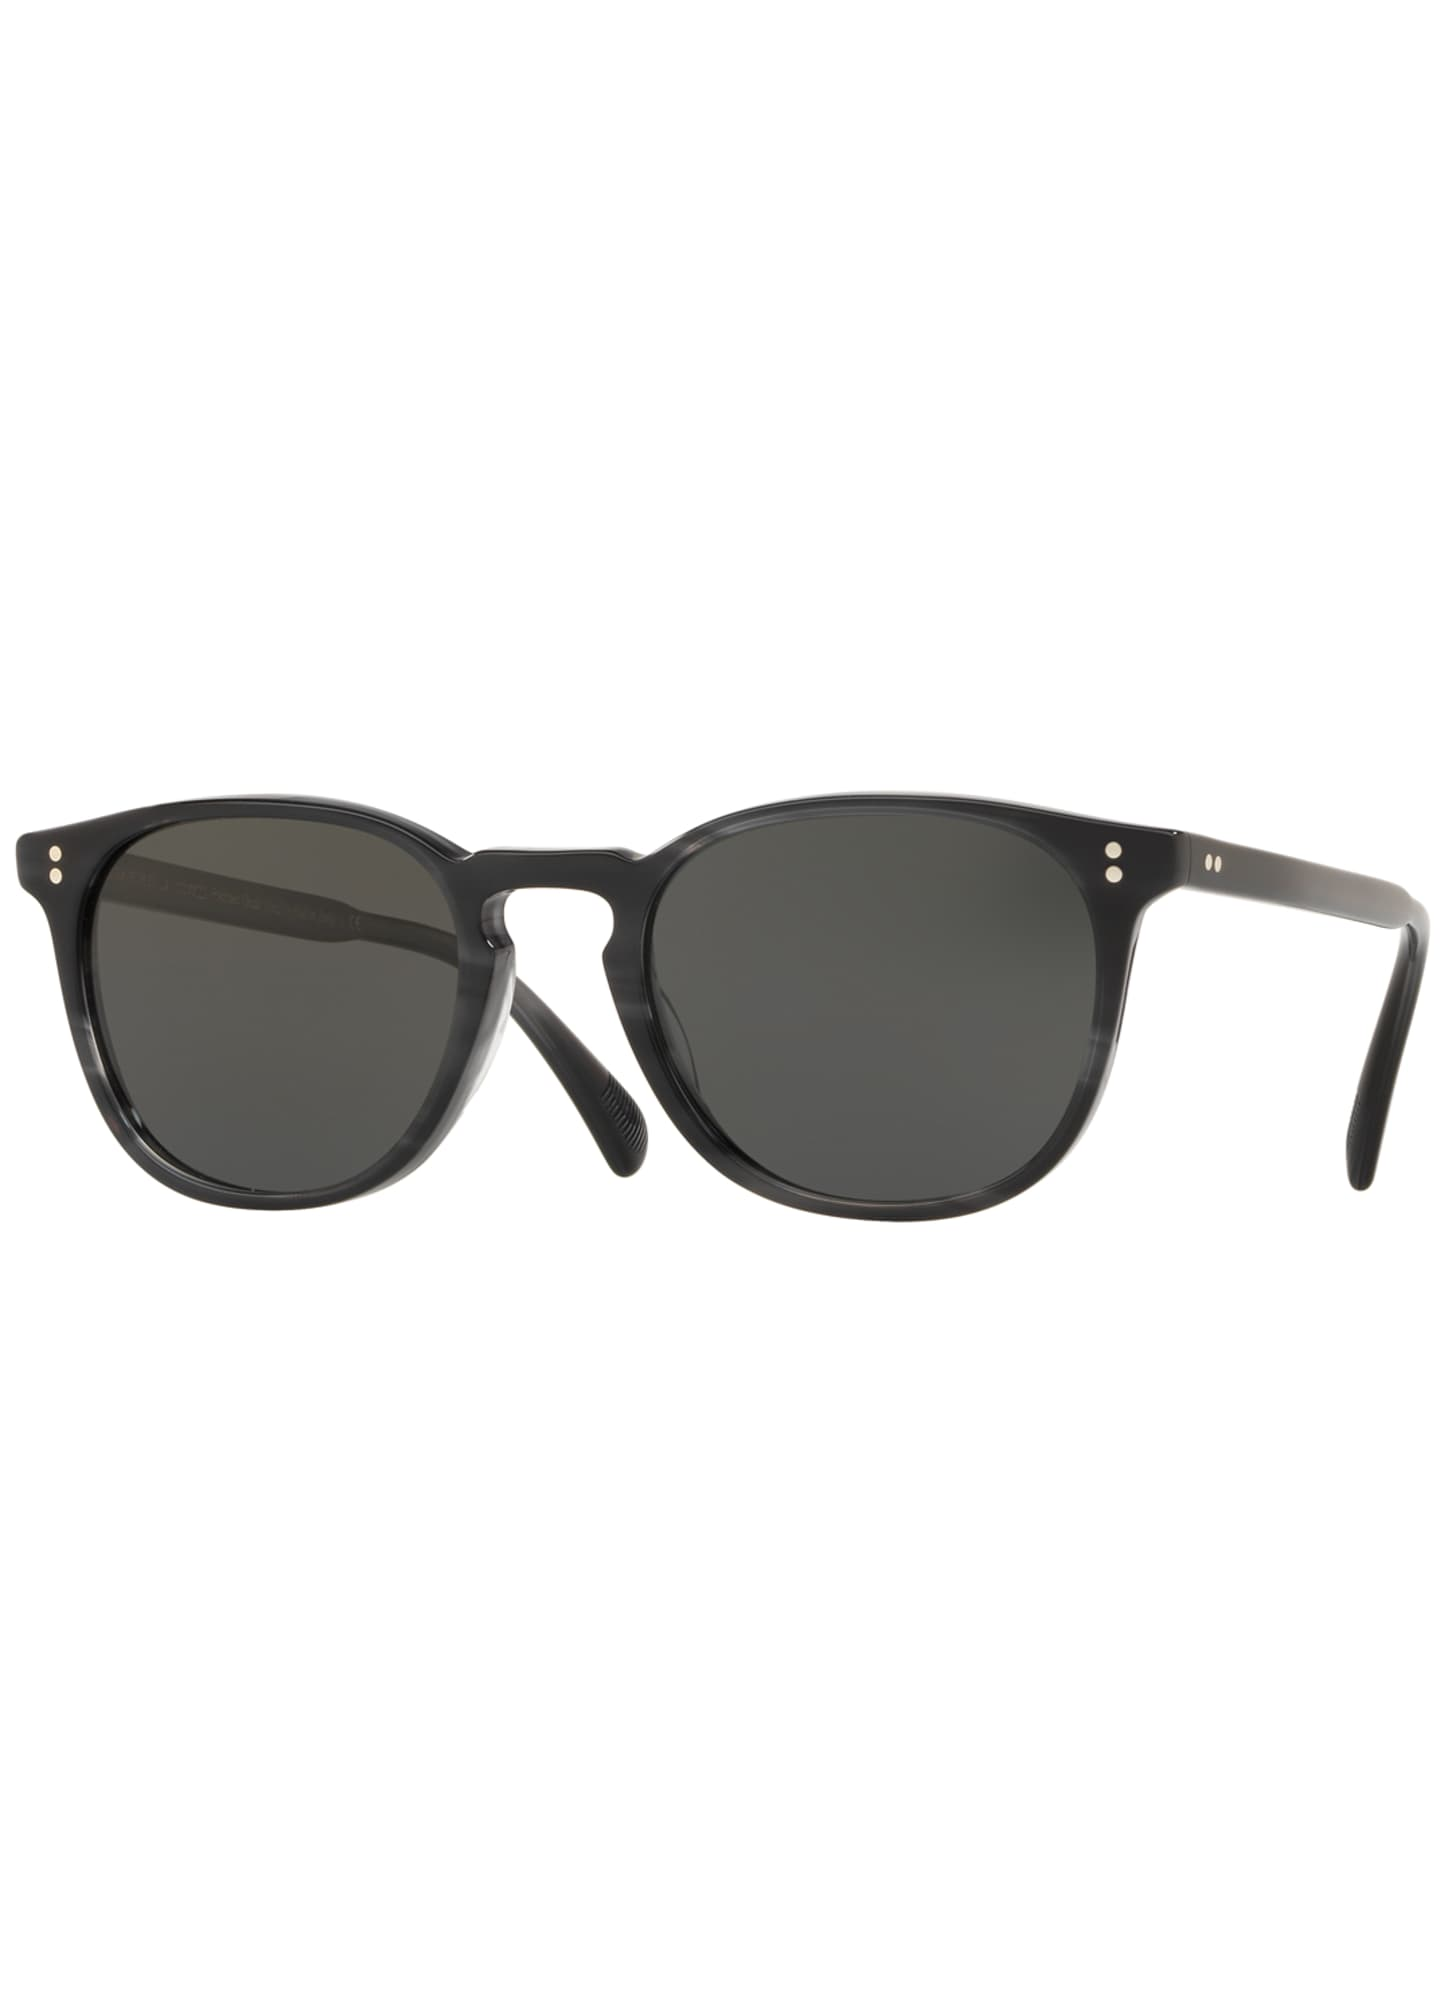 Image 1 of 2: Men's Finley Esq. Universal-Fit Polarized Sunglasses